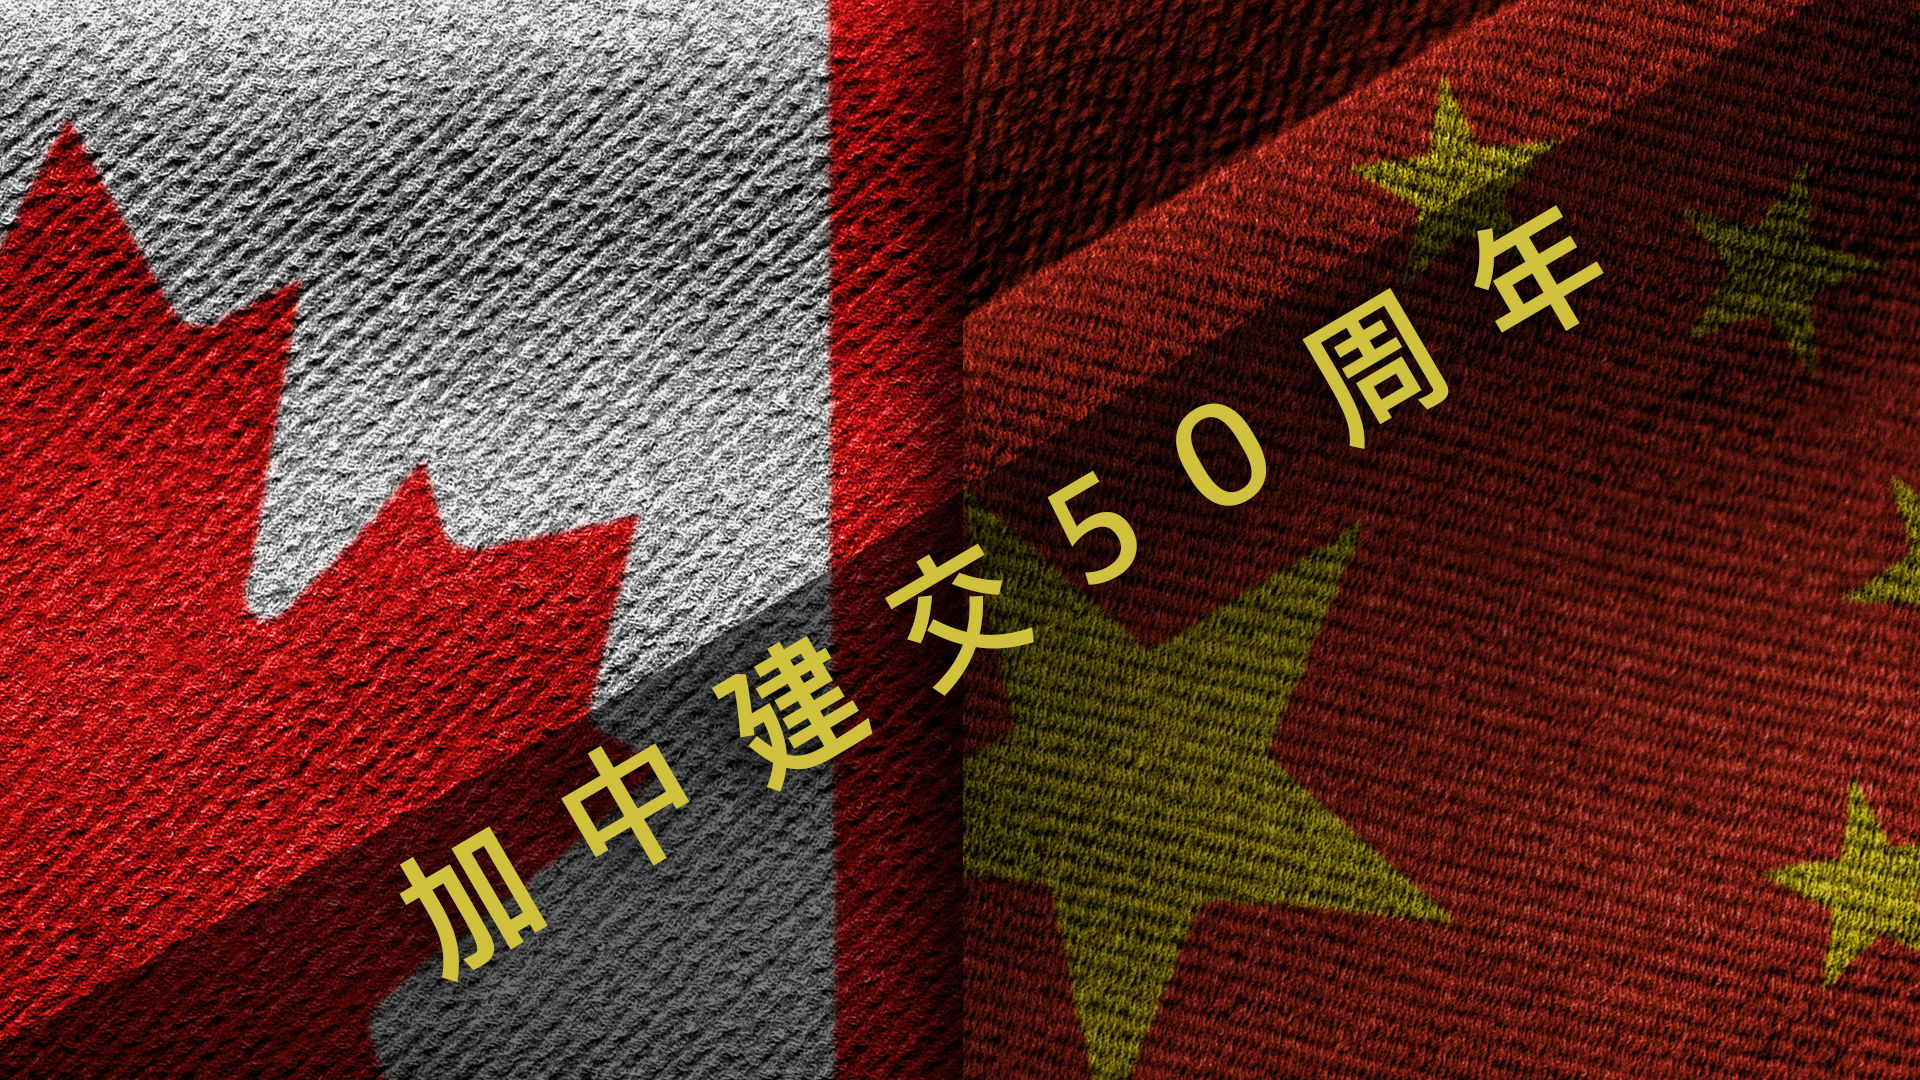 """the text """"中 加 建交 50 周年"""" with the Canadian and Chinese flags in the background"""